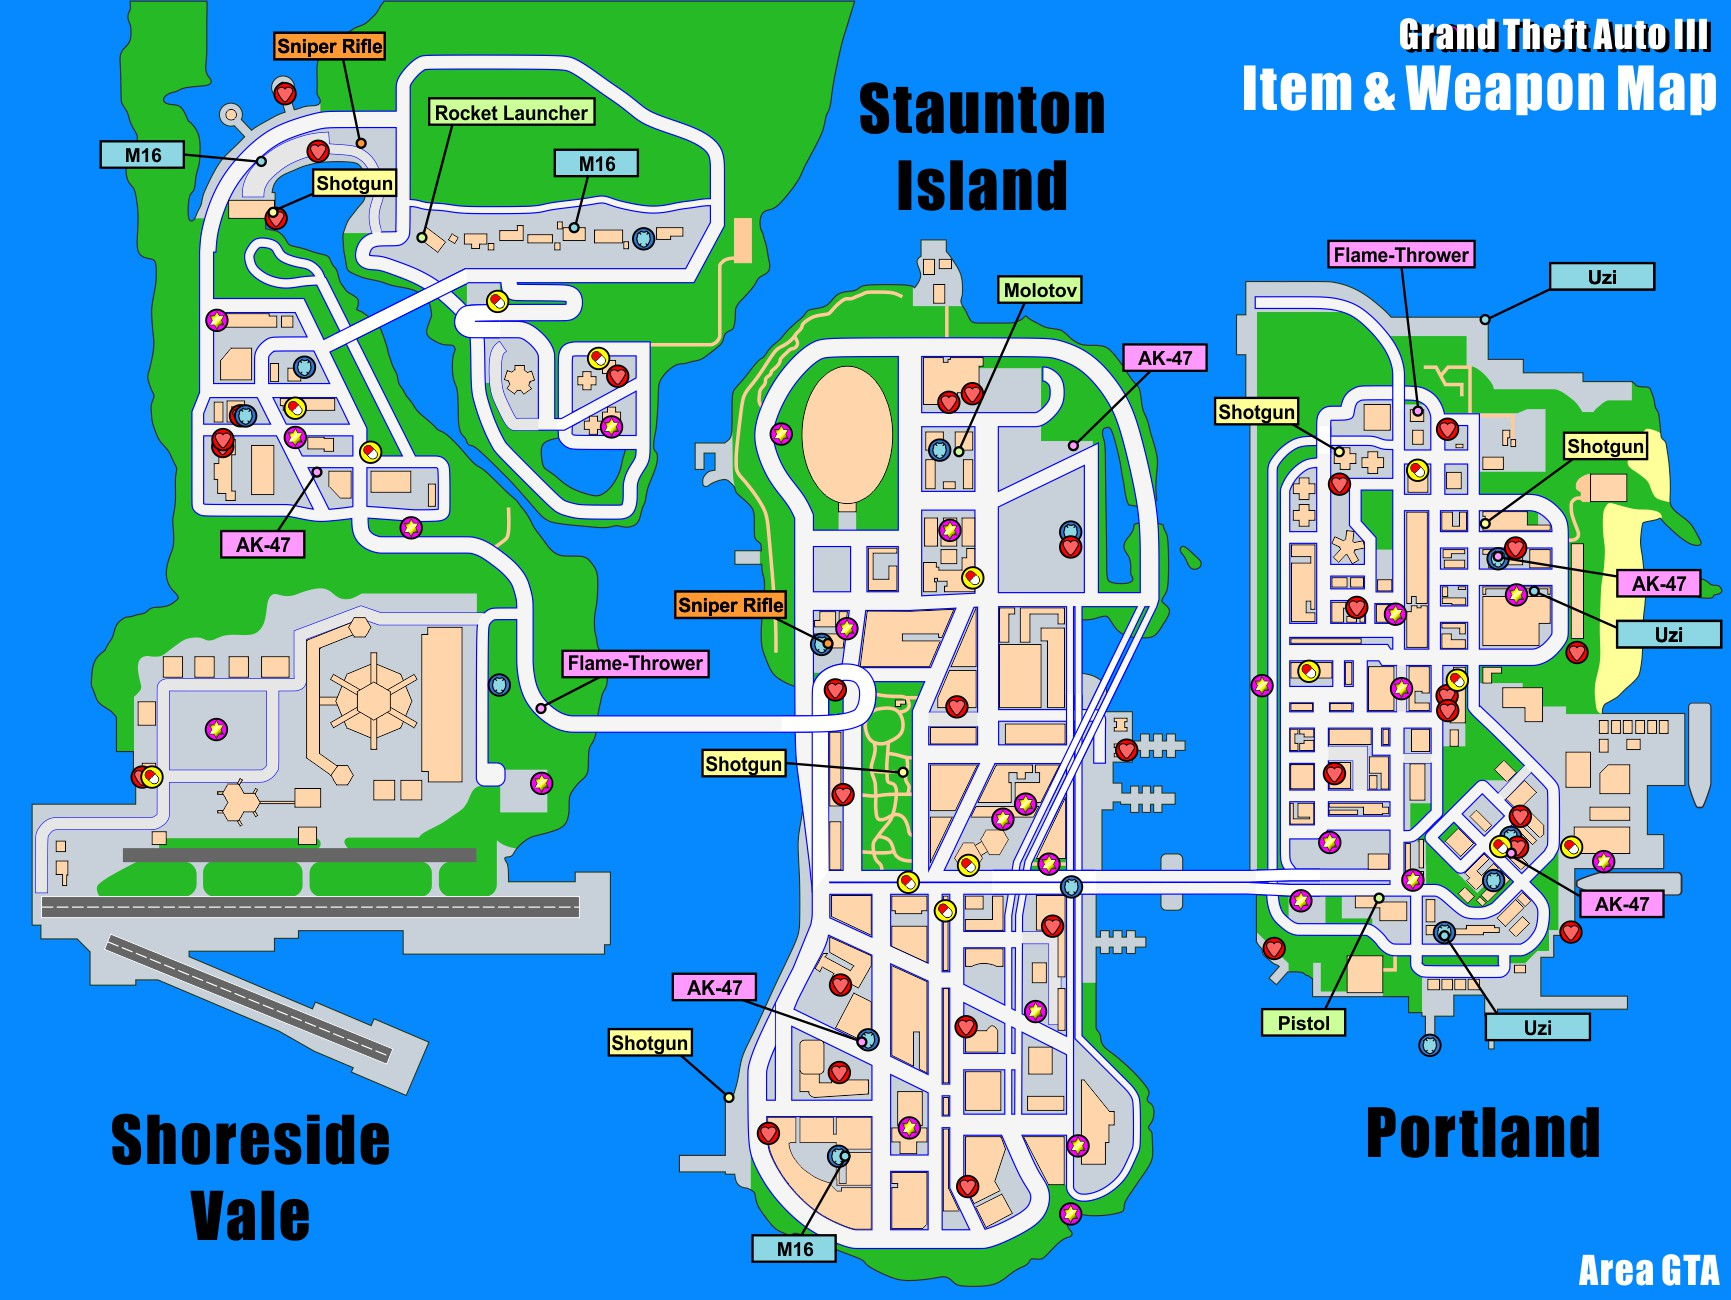 grand theft auto 5 helicopter locations with Maps on Where Is The Helicopter In Gta 5 Secret Locations also Grand Theft Auto 5 Gta V Cheats Tips Tricks Guides More additionally Customs specific item in addition Gta San Andreas Store Locations furthermore Grandtheftauto5cheatscodes.